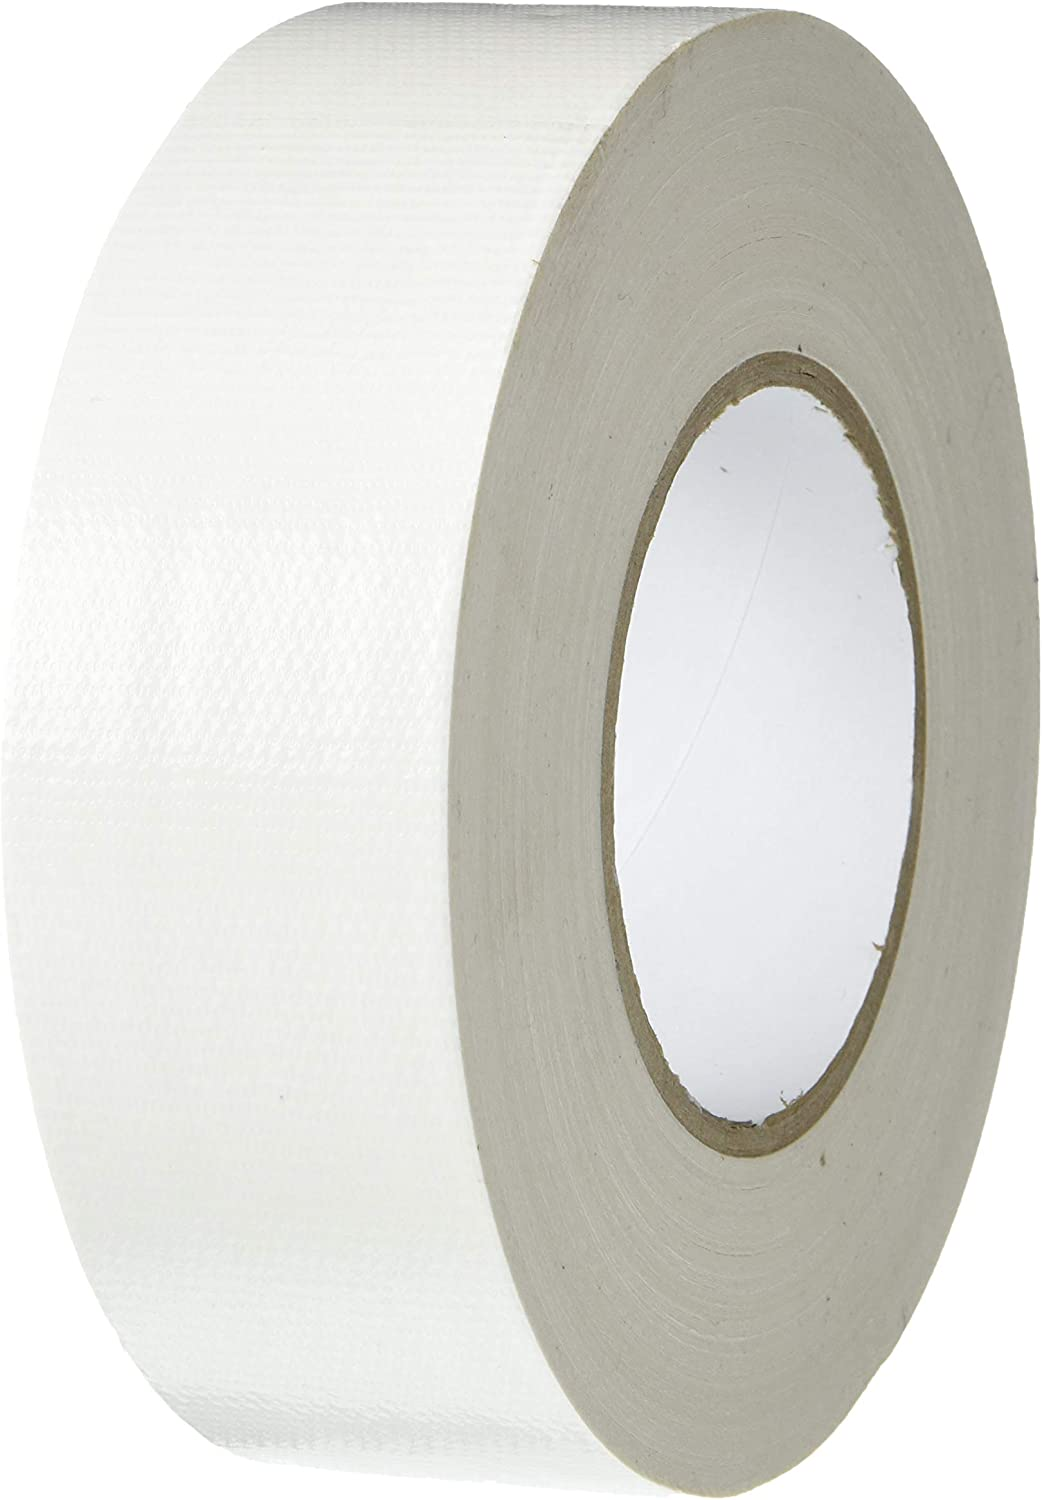 T.R.U. CDT-36 Industrial Grade Duct Tape. Waterproof and UV Resistant. Multiple Colors Available. (White, 2 in.)